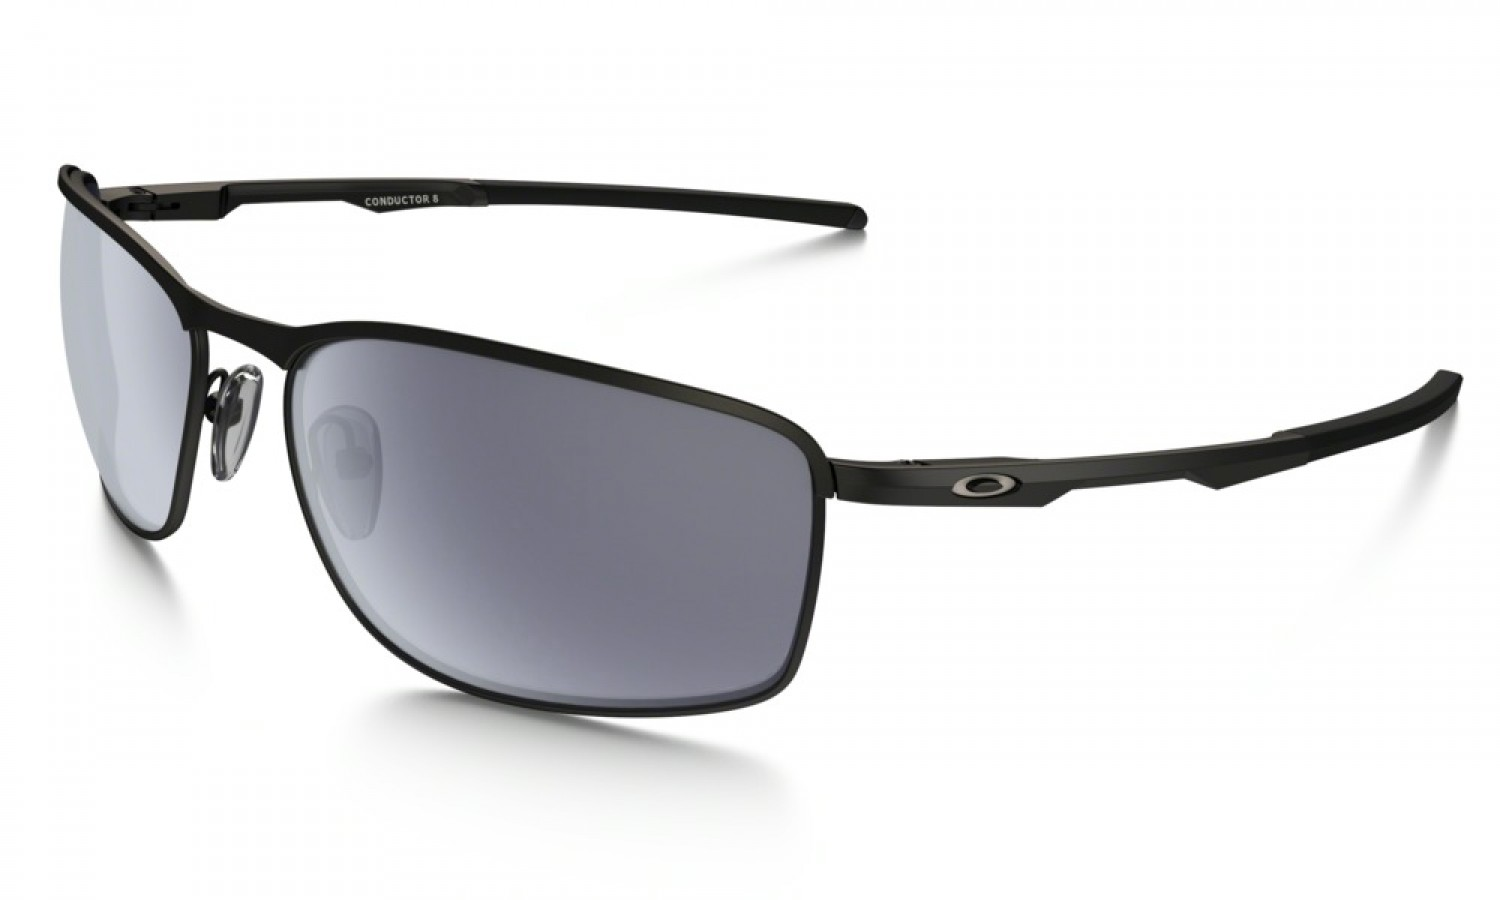 Oakley Prescription Sunglasses |Guaranteed Lowest Price